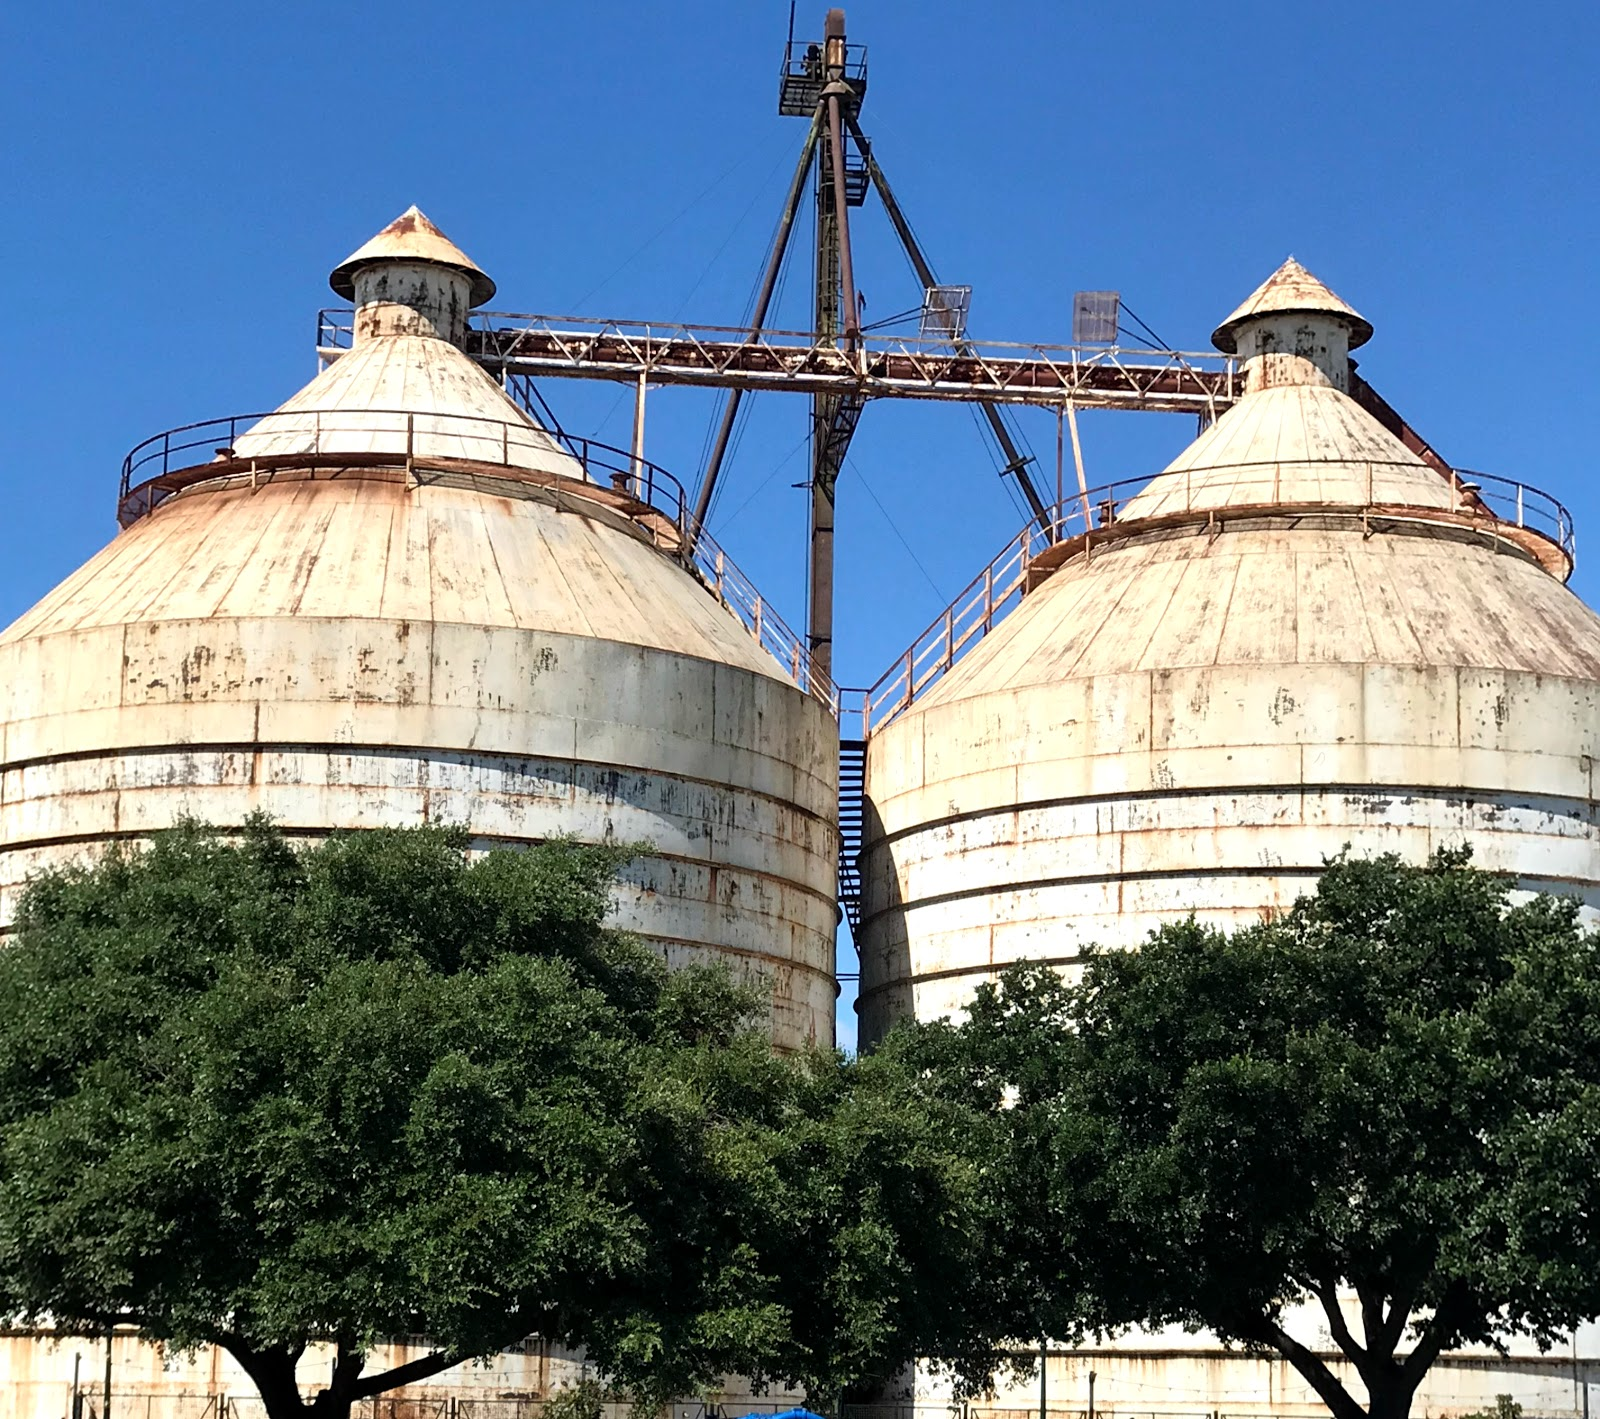 Image: Magnolia Silos in Waco Texas. Taken by Tangie Bell for her blog Bits and Babbles.